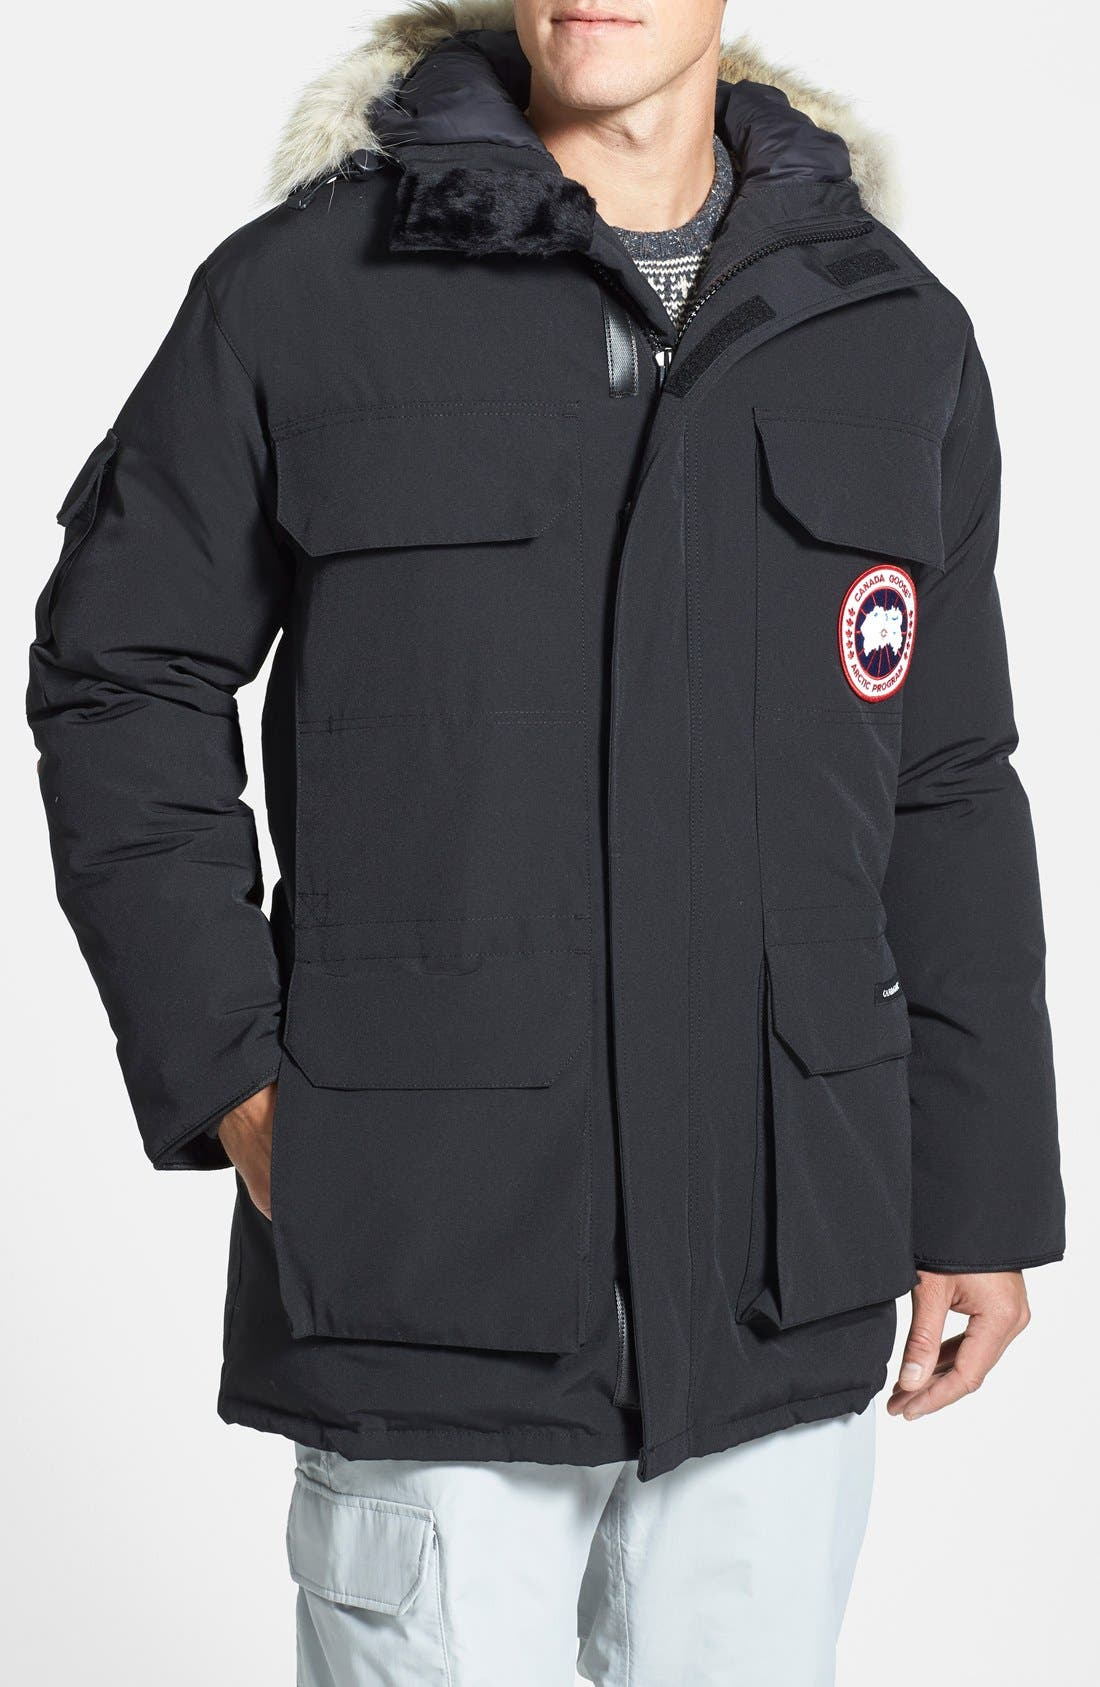 CANADA GOOSE 'Expedition' Relaxed Fit Down Parka, Main, color, 001